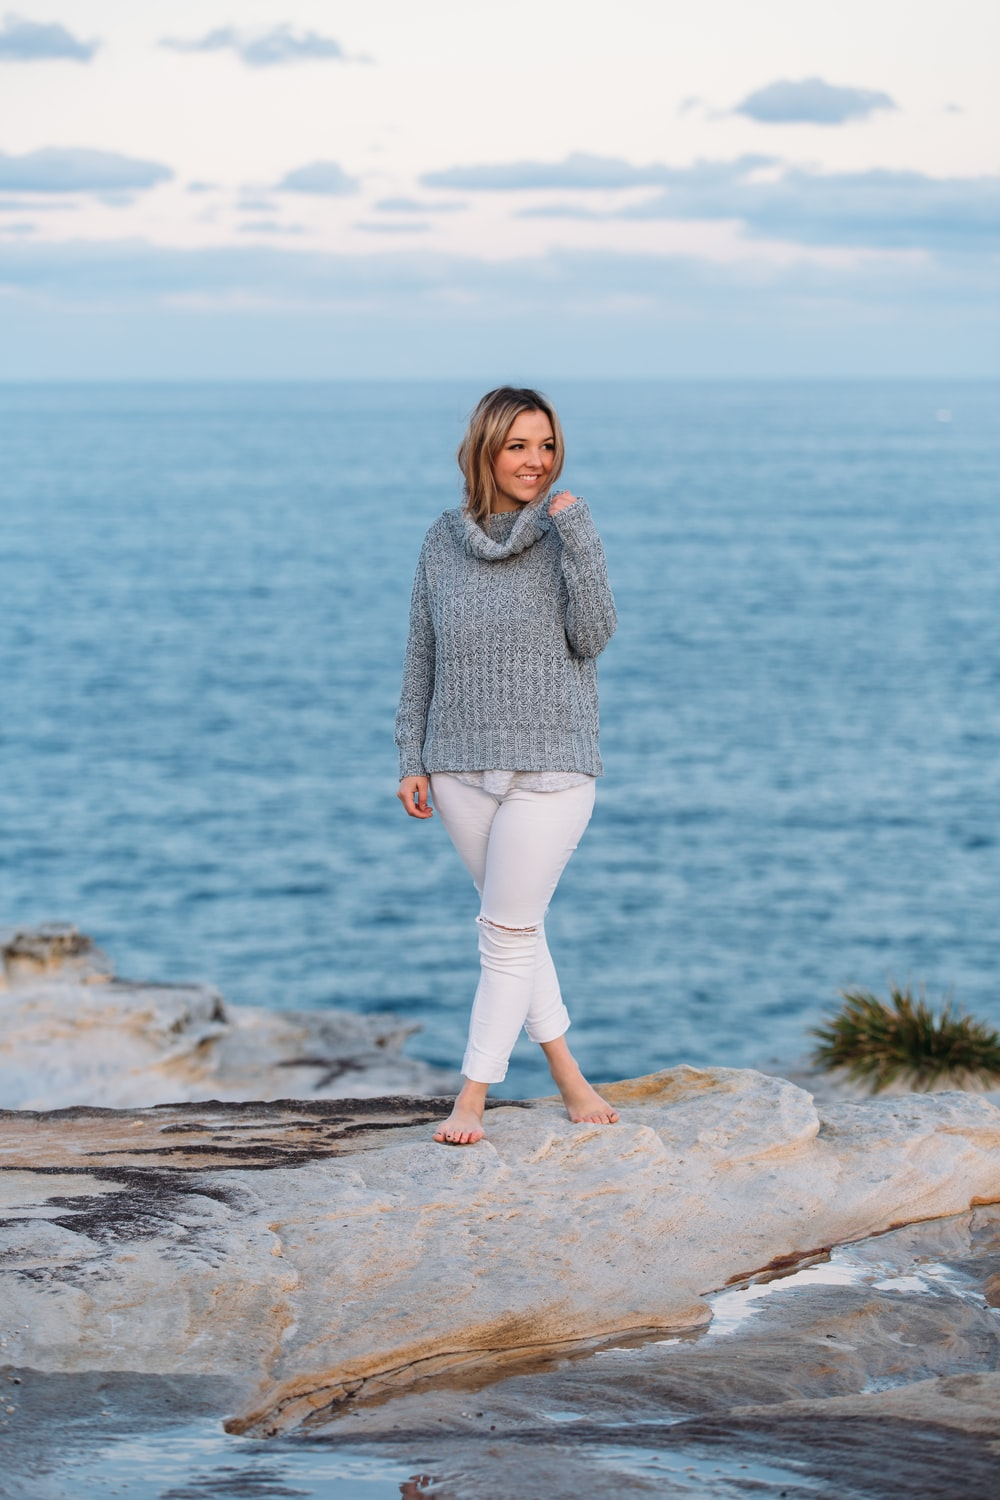 woman in gray sweater and white pants standing on brown rock near body of water during